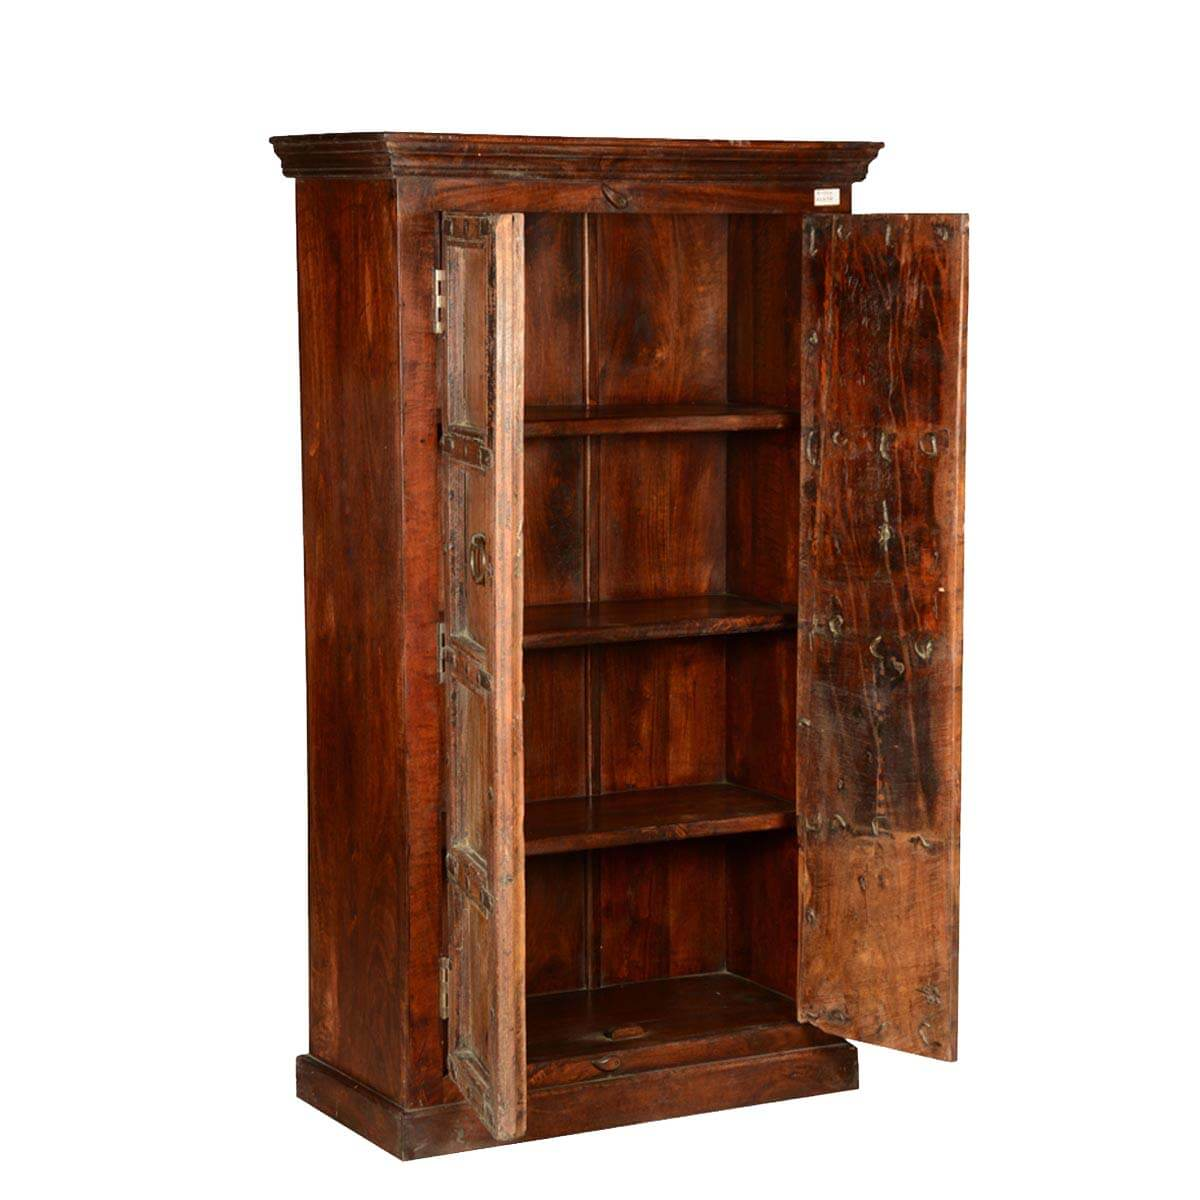 Rustic Gothic Traditions Reclaimed Wood Wardrobe Armoire ...